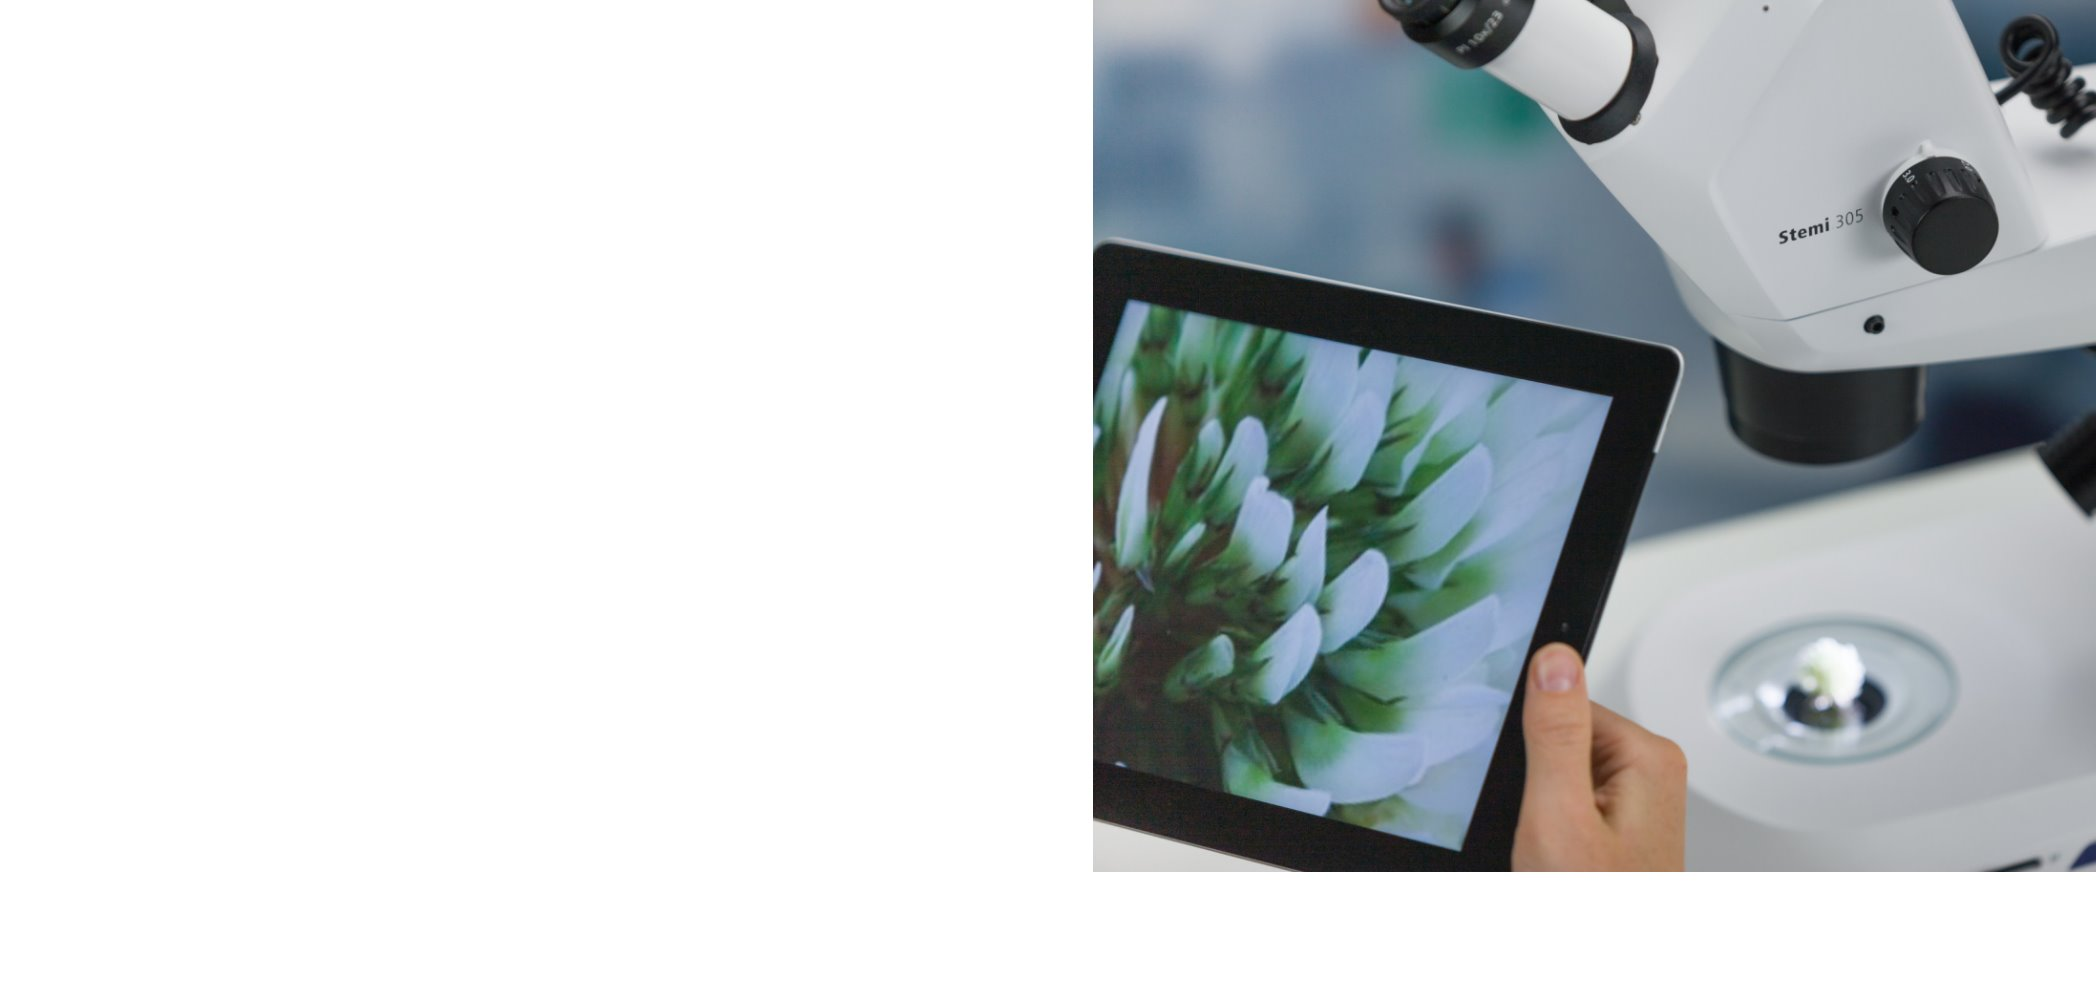 Your stereomicroscope with integrated HD Wi-Fi camera